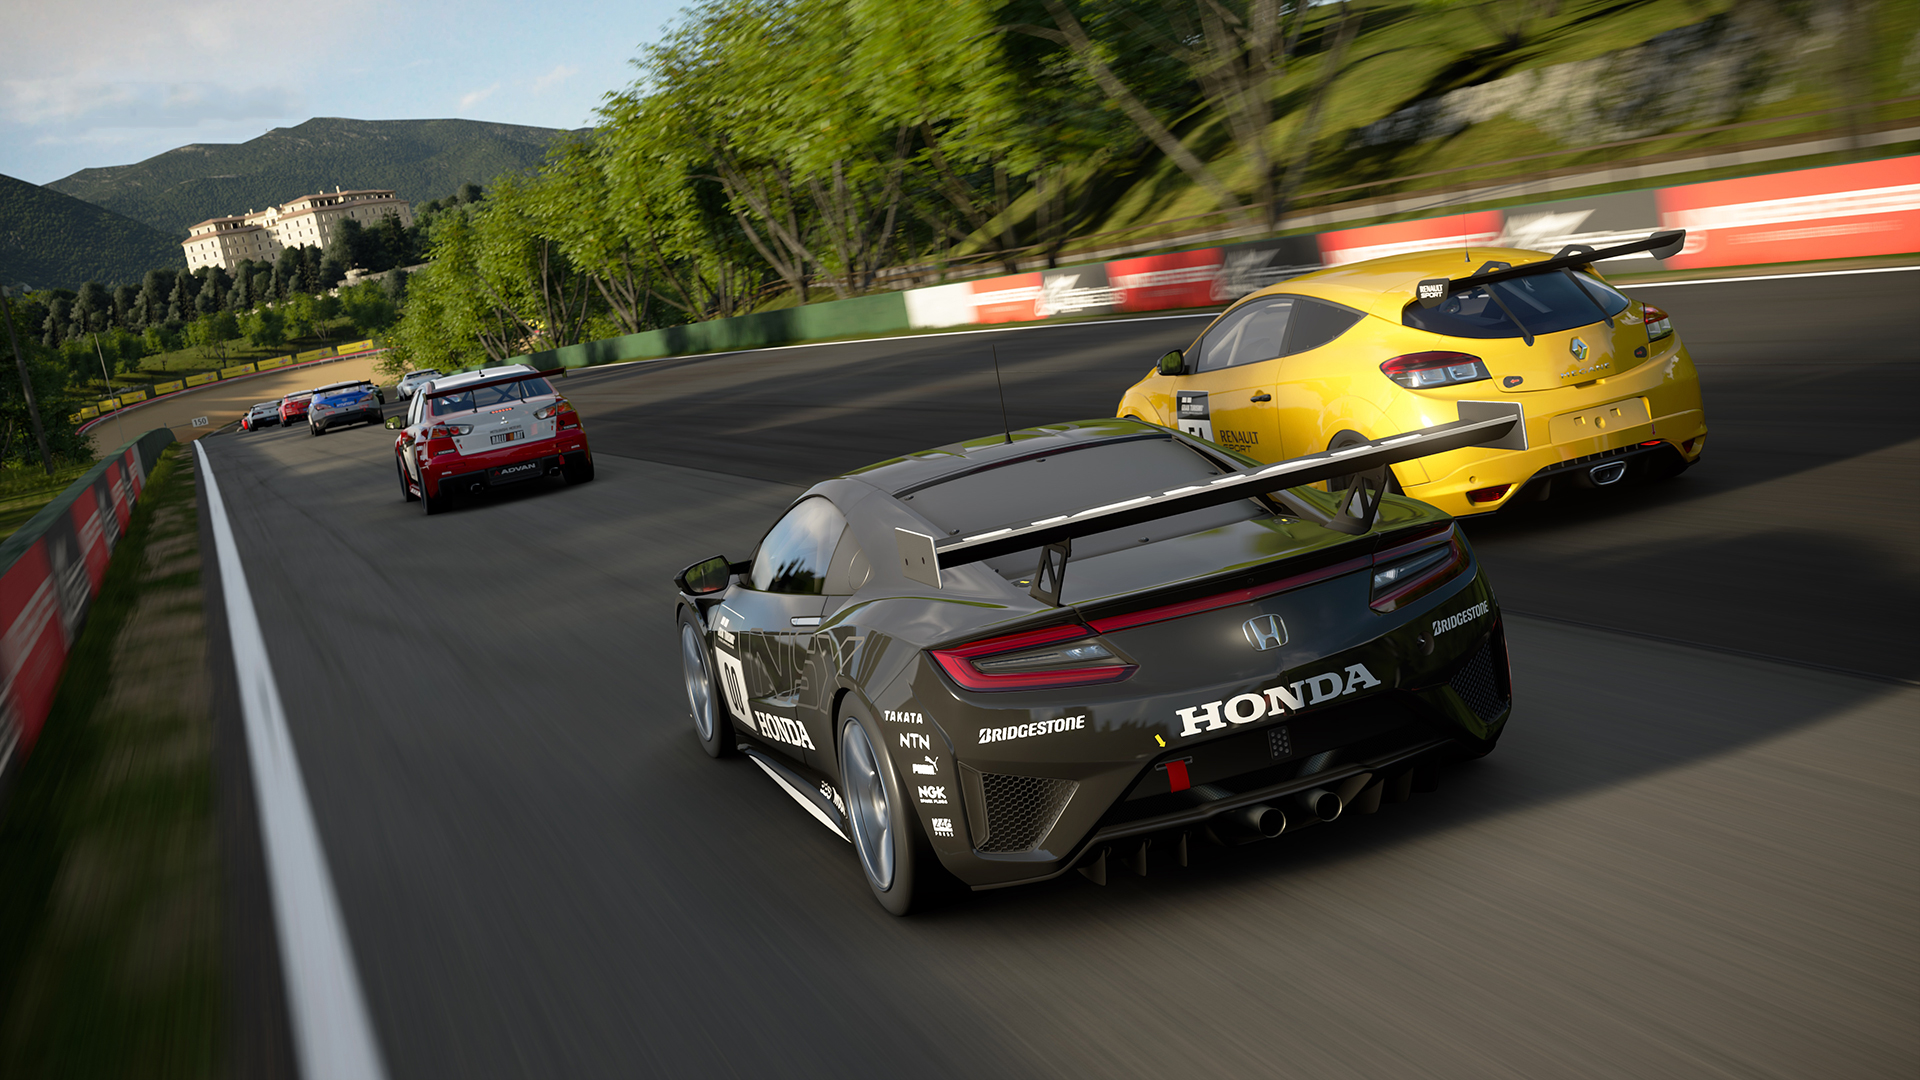 gran turismo 7 hd wallpaper 72366